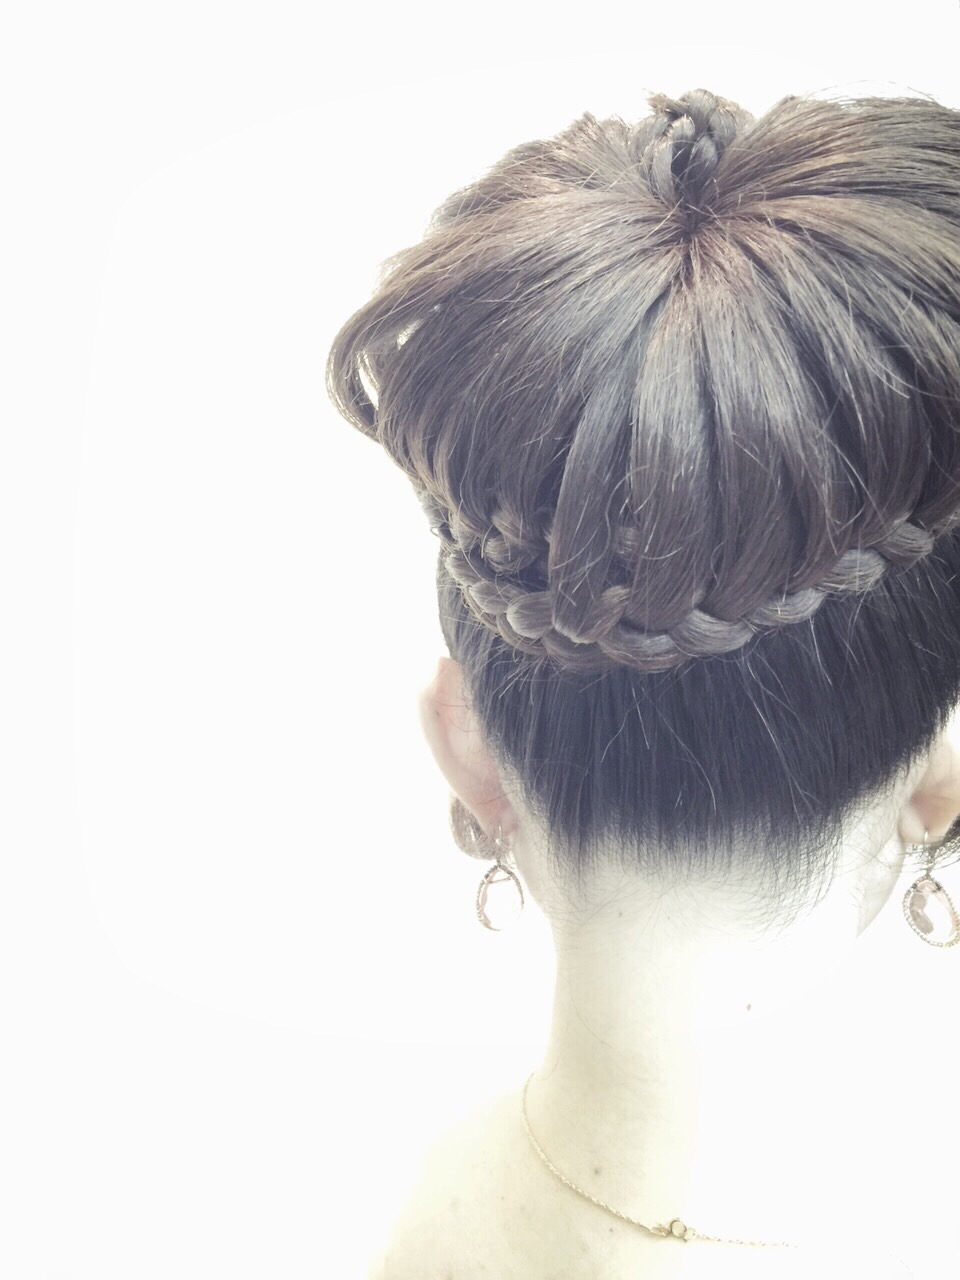 2015 HAIR ARRANGE CONTEST & COMPETITION